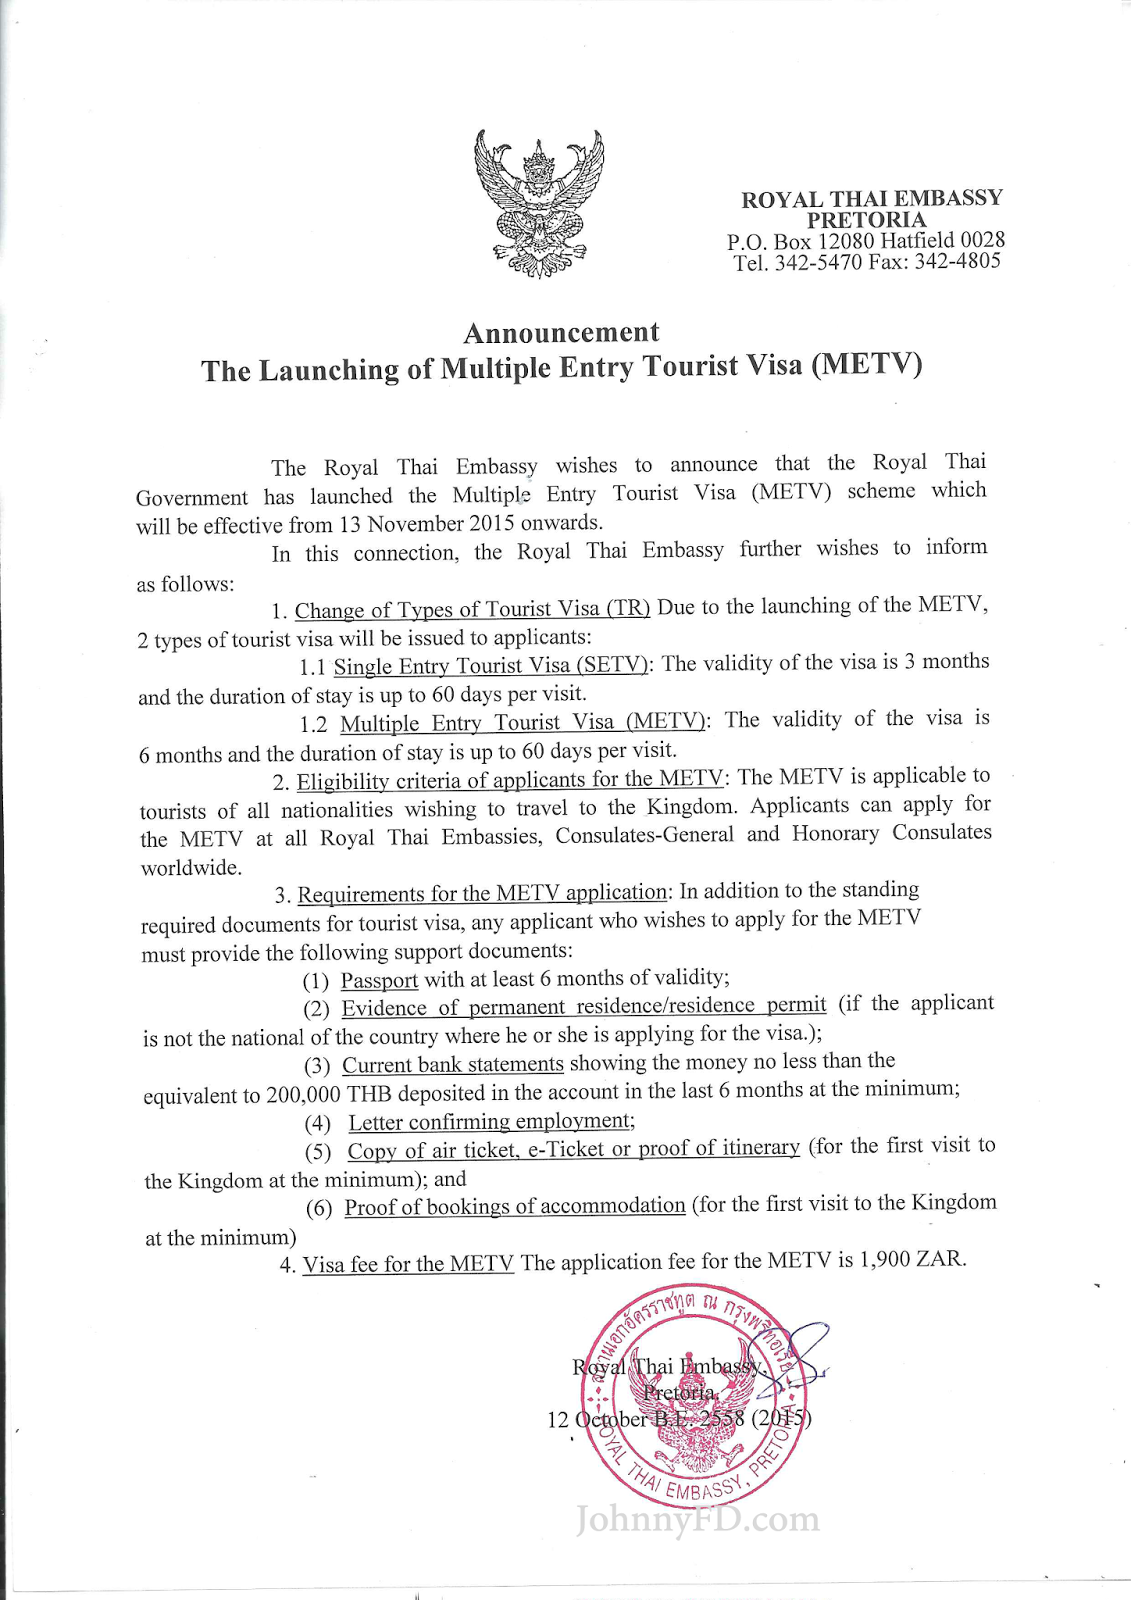 but heres the official announcement by the royal thai embassy on behalf of the thai government themselves